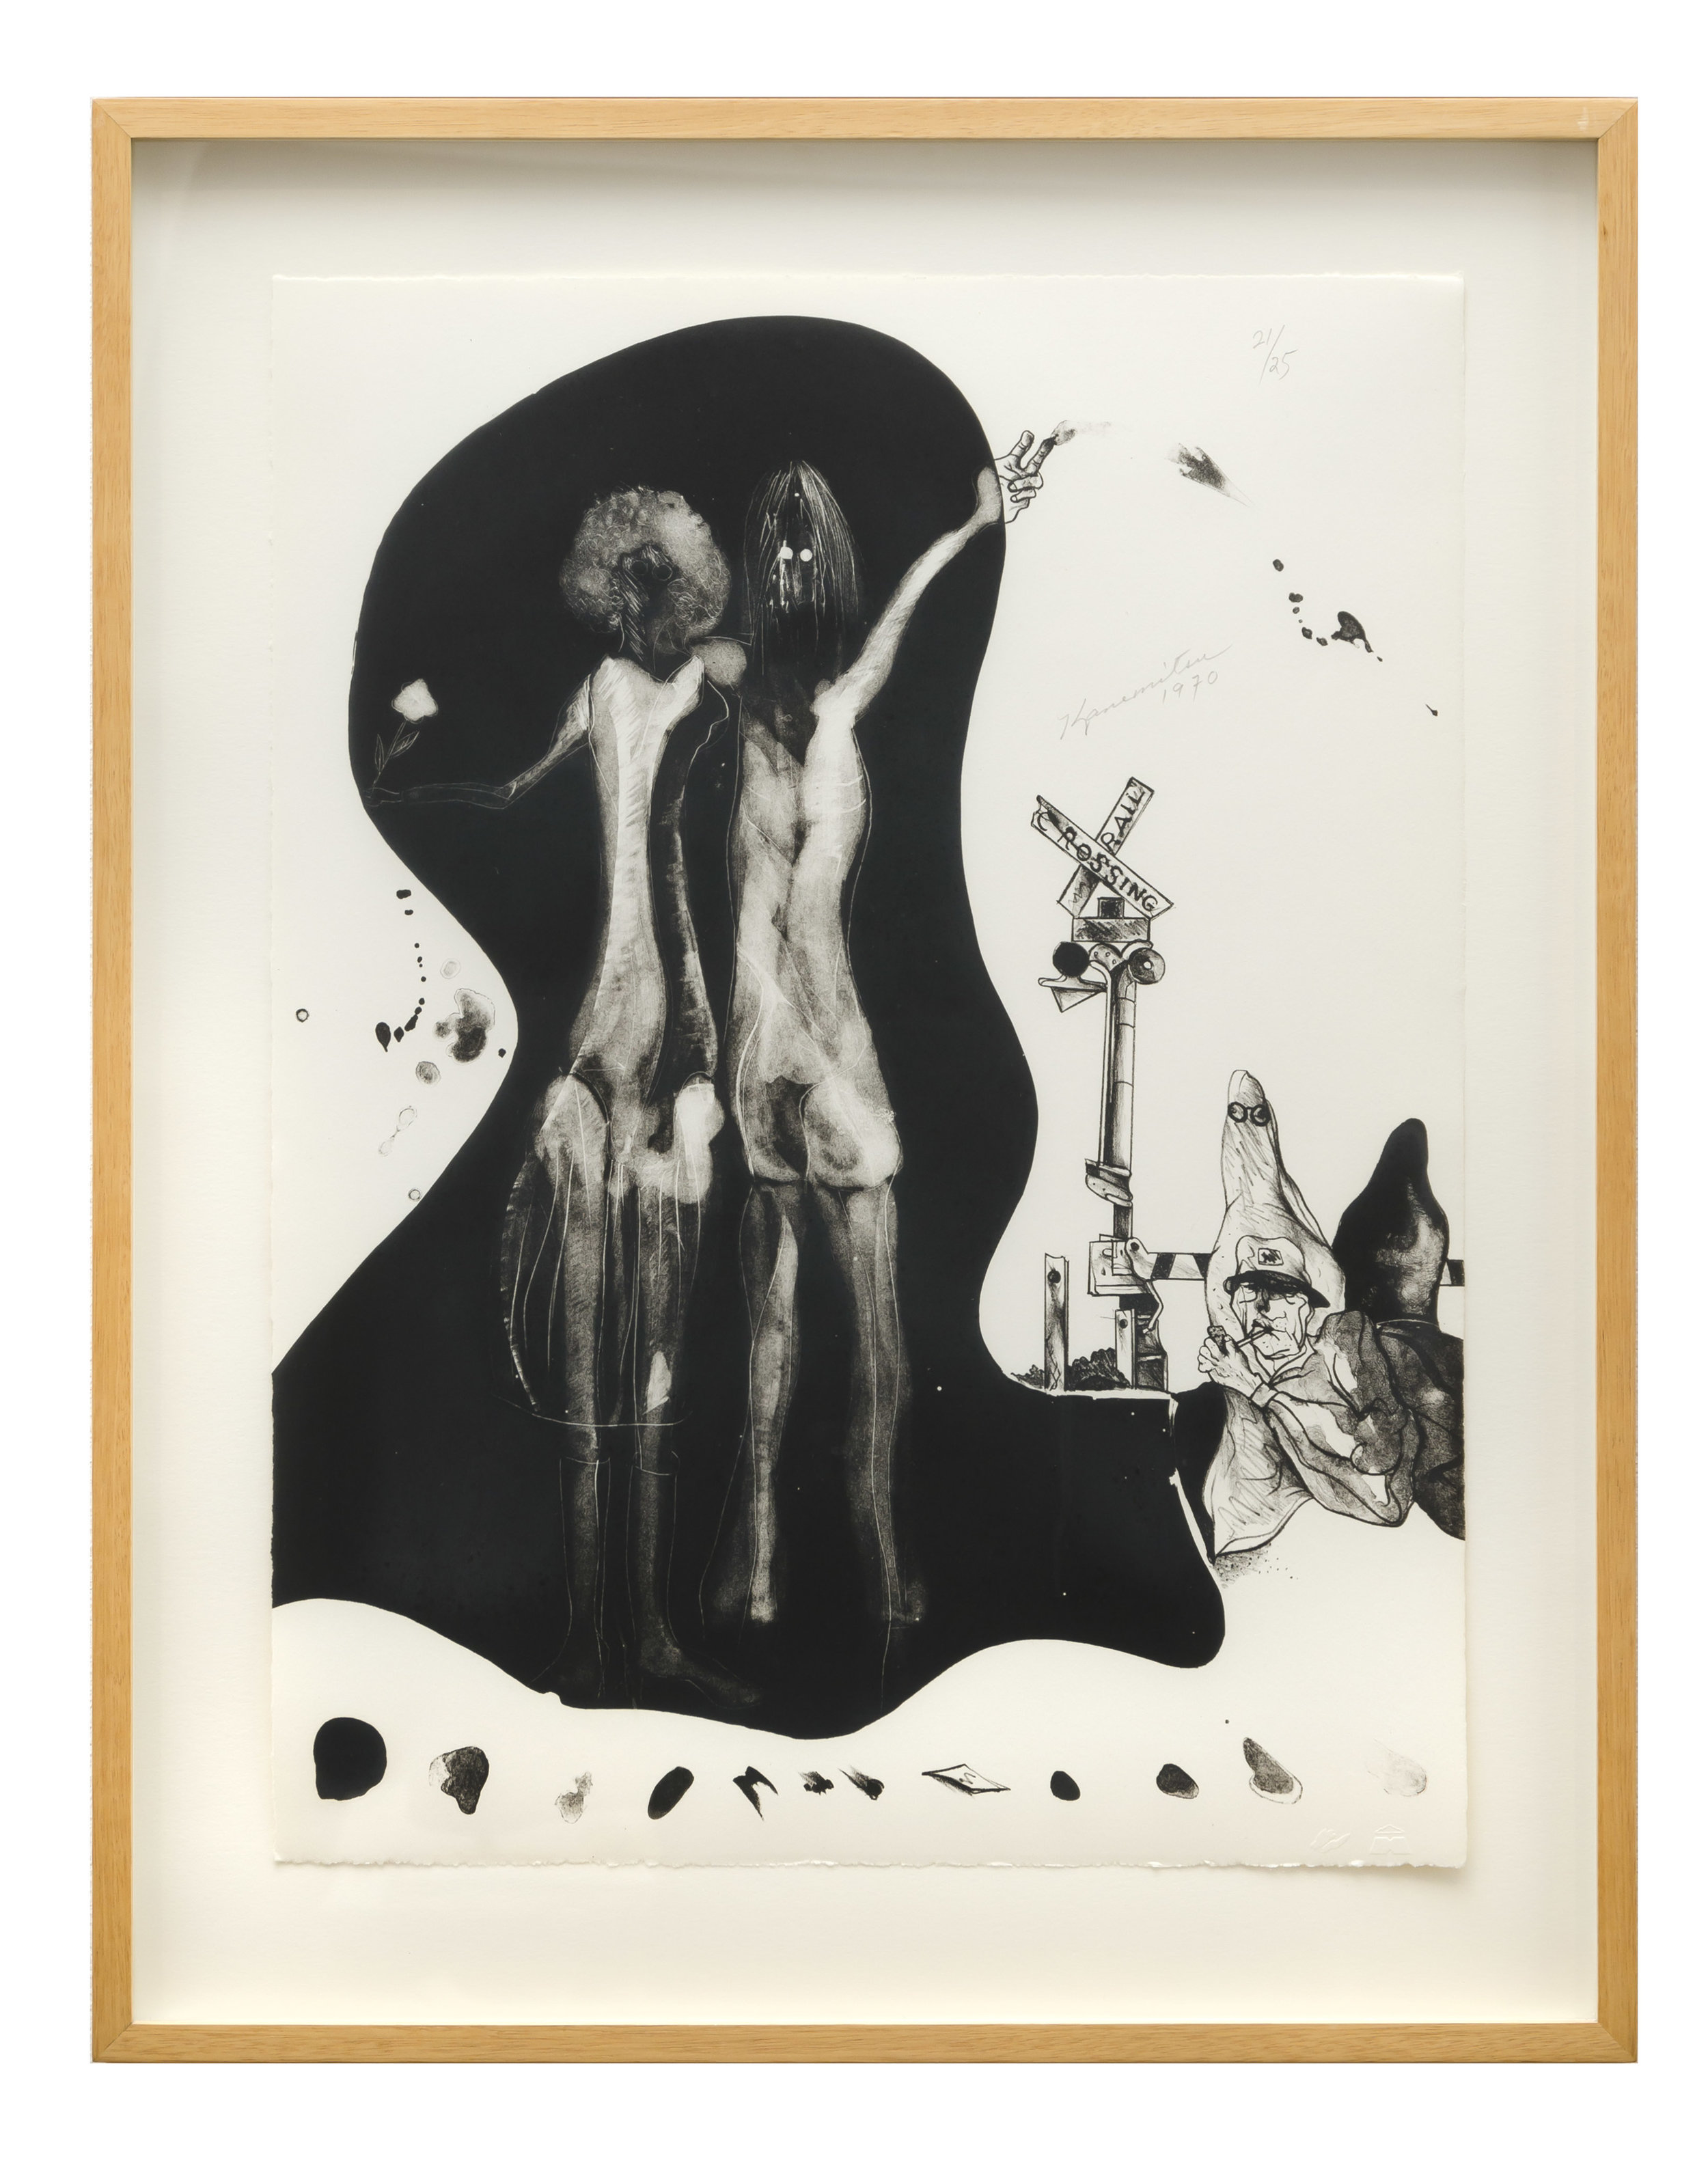 Hitchhiker Ghost , 1970 Ed. 21/25  lithograph 20 x 15 inches; 50.8 x 38.1 centimeters  $1,200